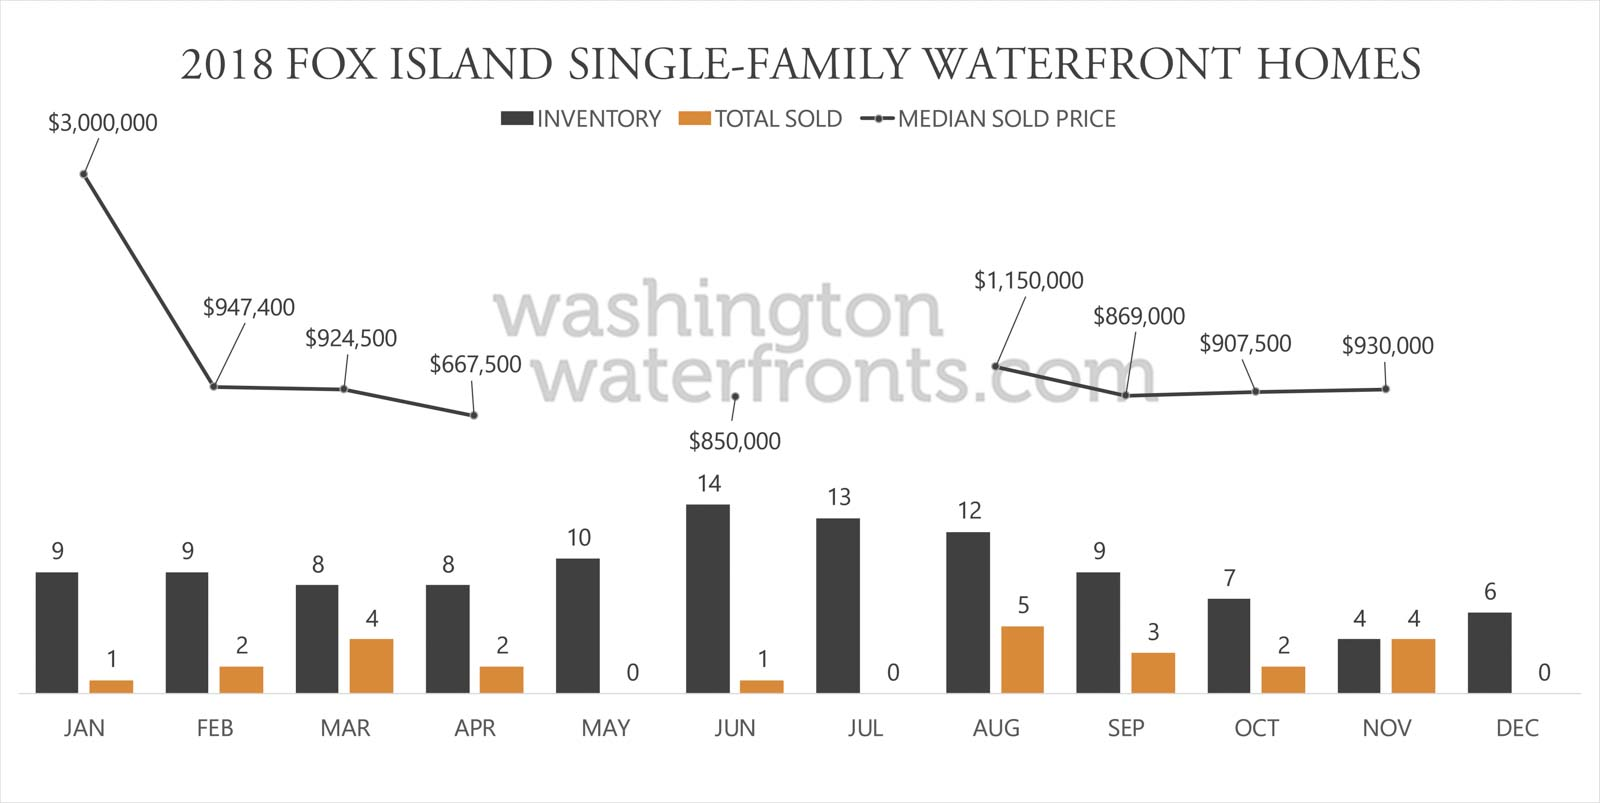 Fox Island Waterfront Inventory